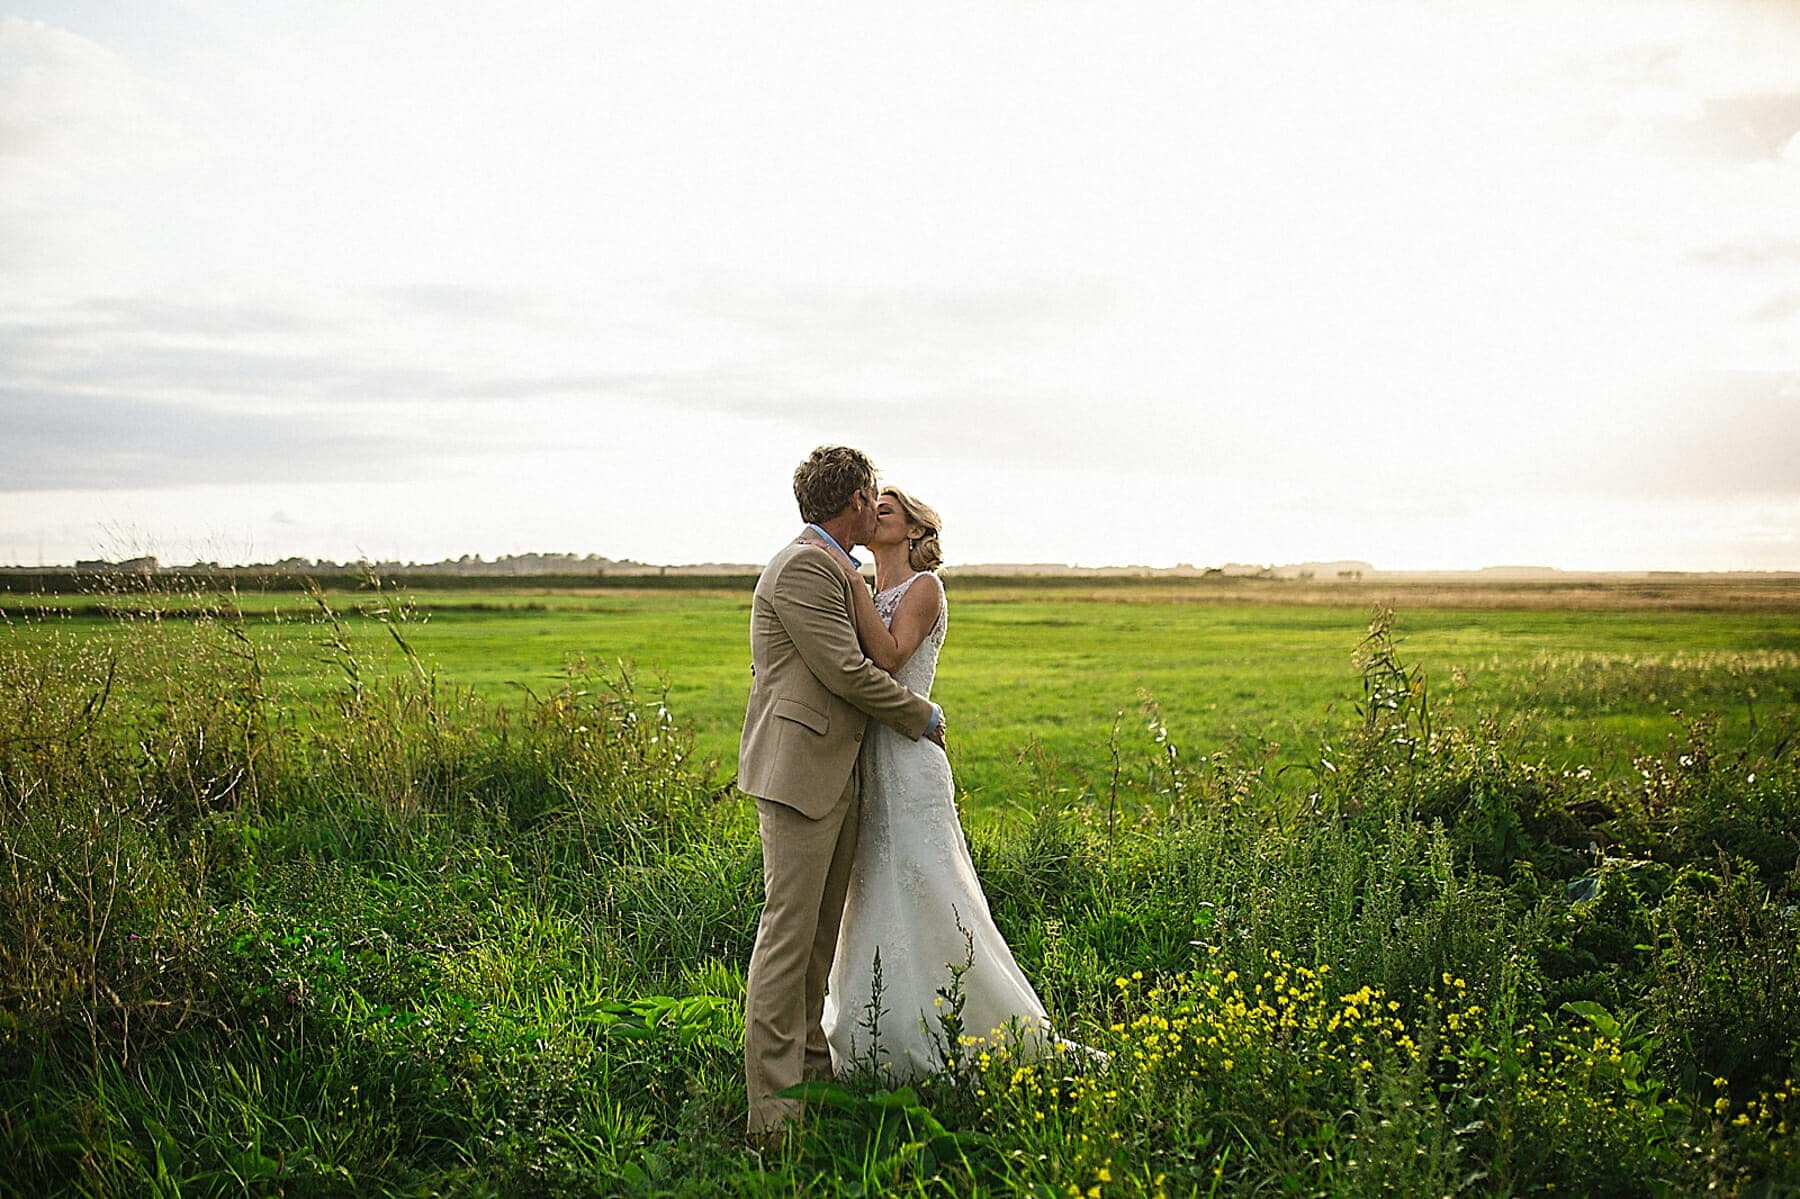 aldeburgh bride and groom wedding portrait in beautiful landscape